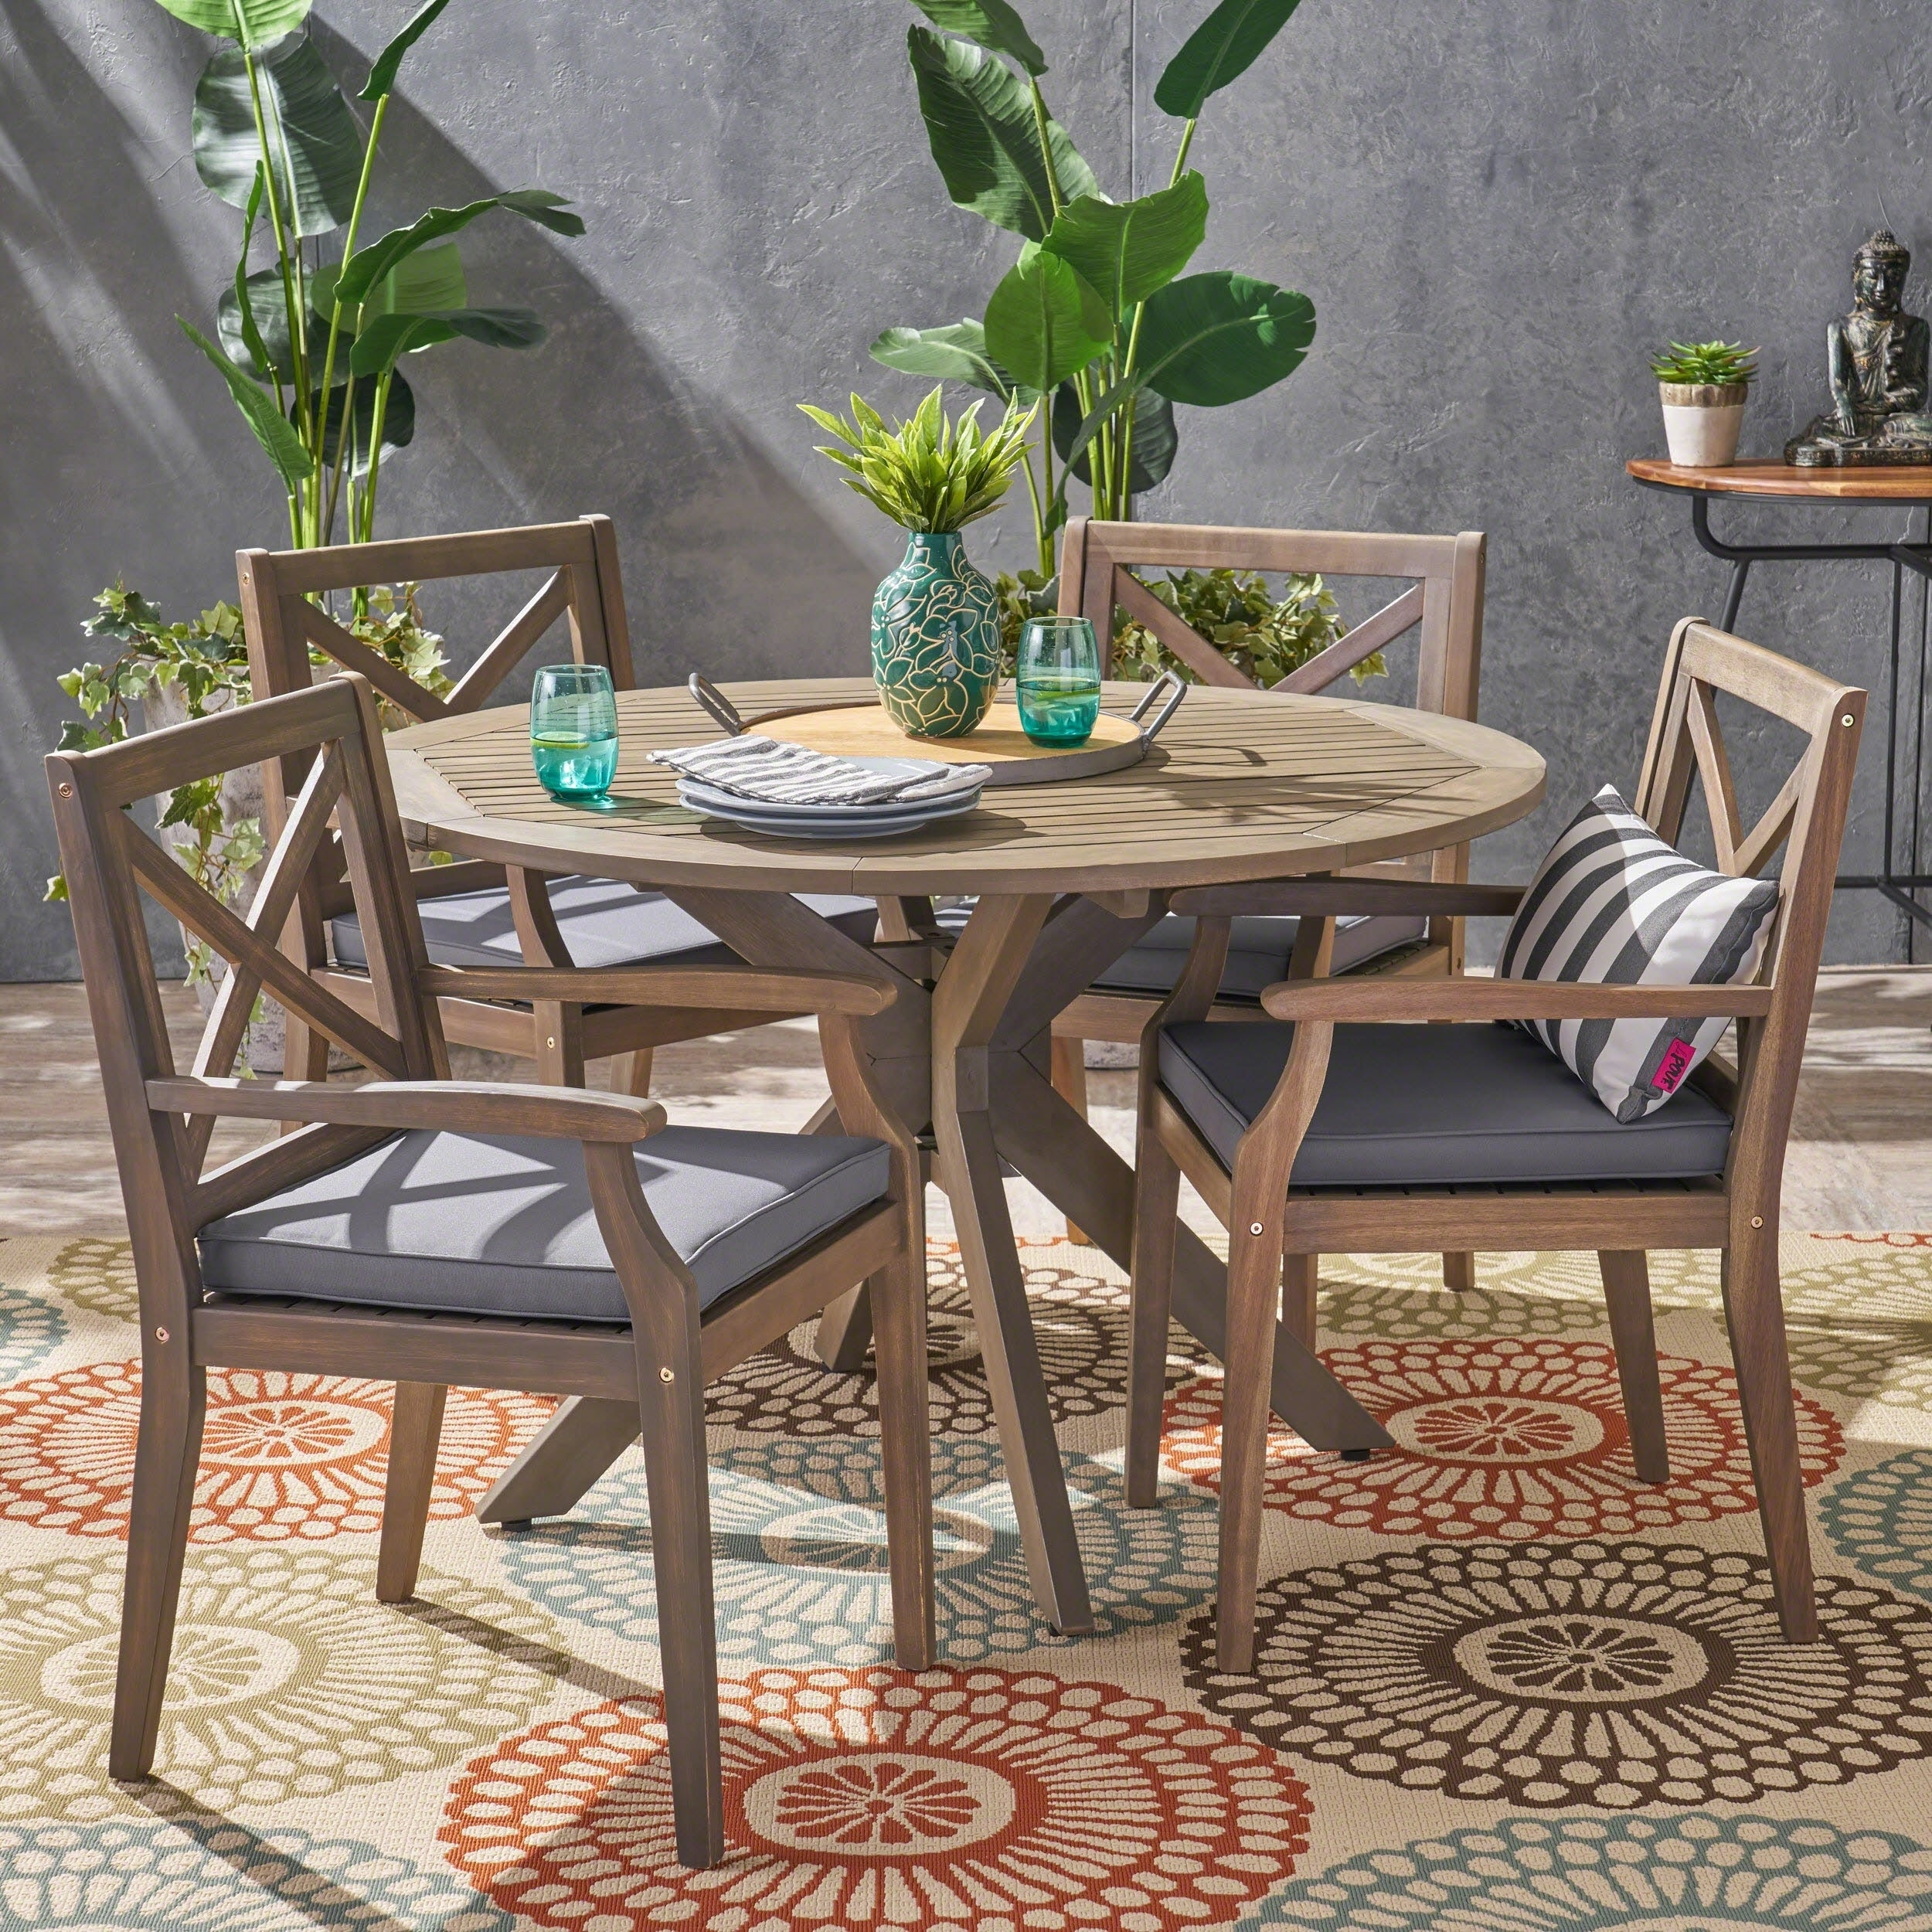 Llano Outdoor 5 Piece Acacia Wood Dining Set By Christopher Knight Home Overstock 22361673